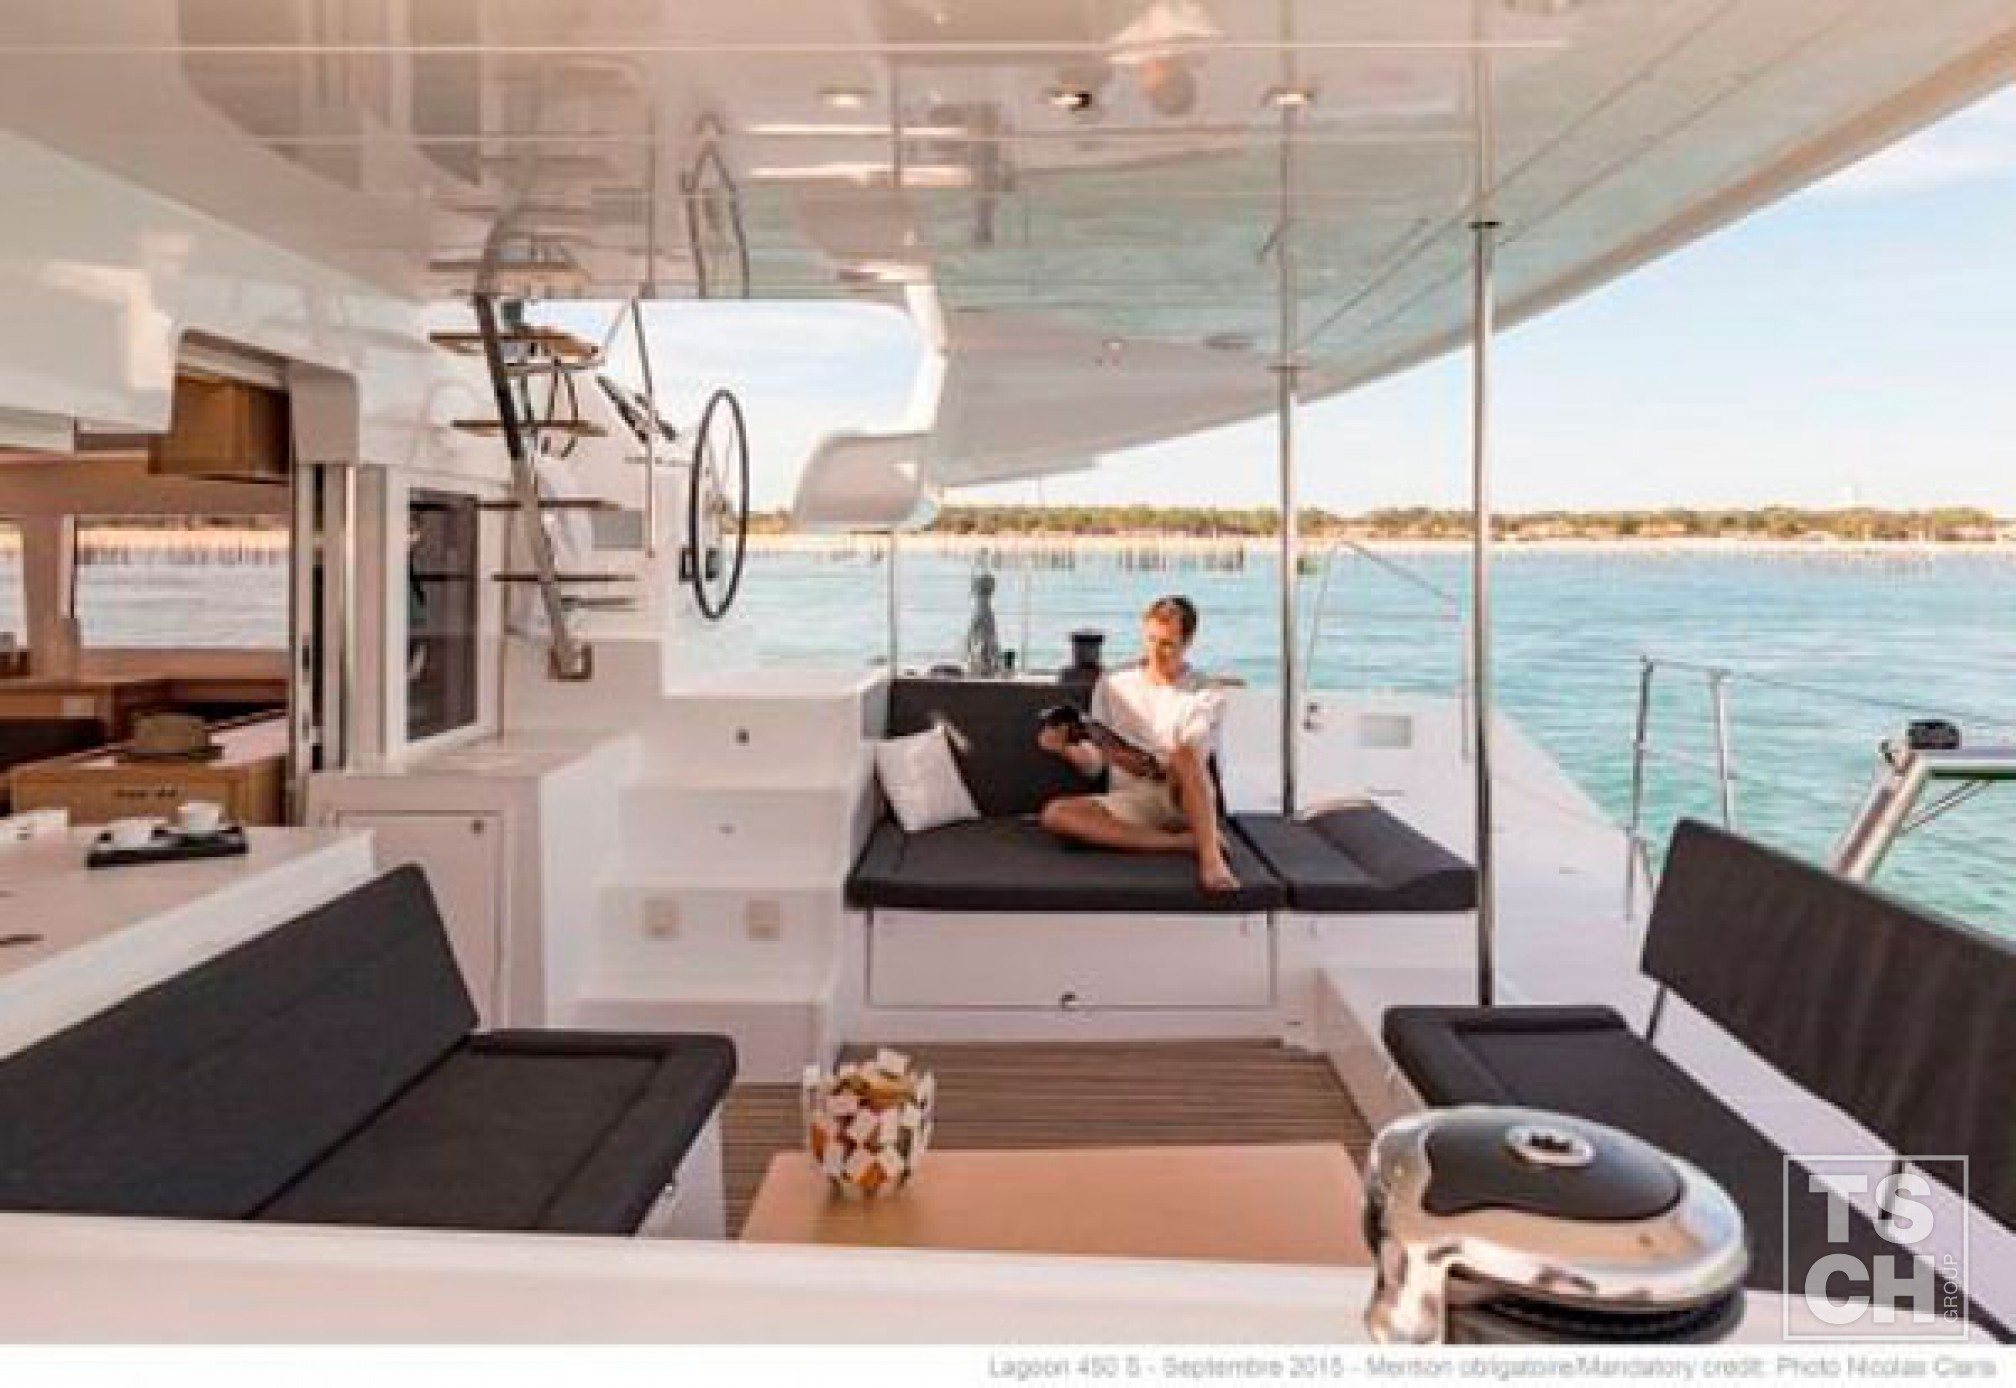 Lagoon 450S catamaran outdoors saloon